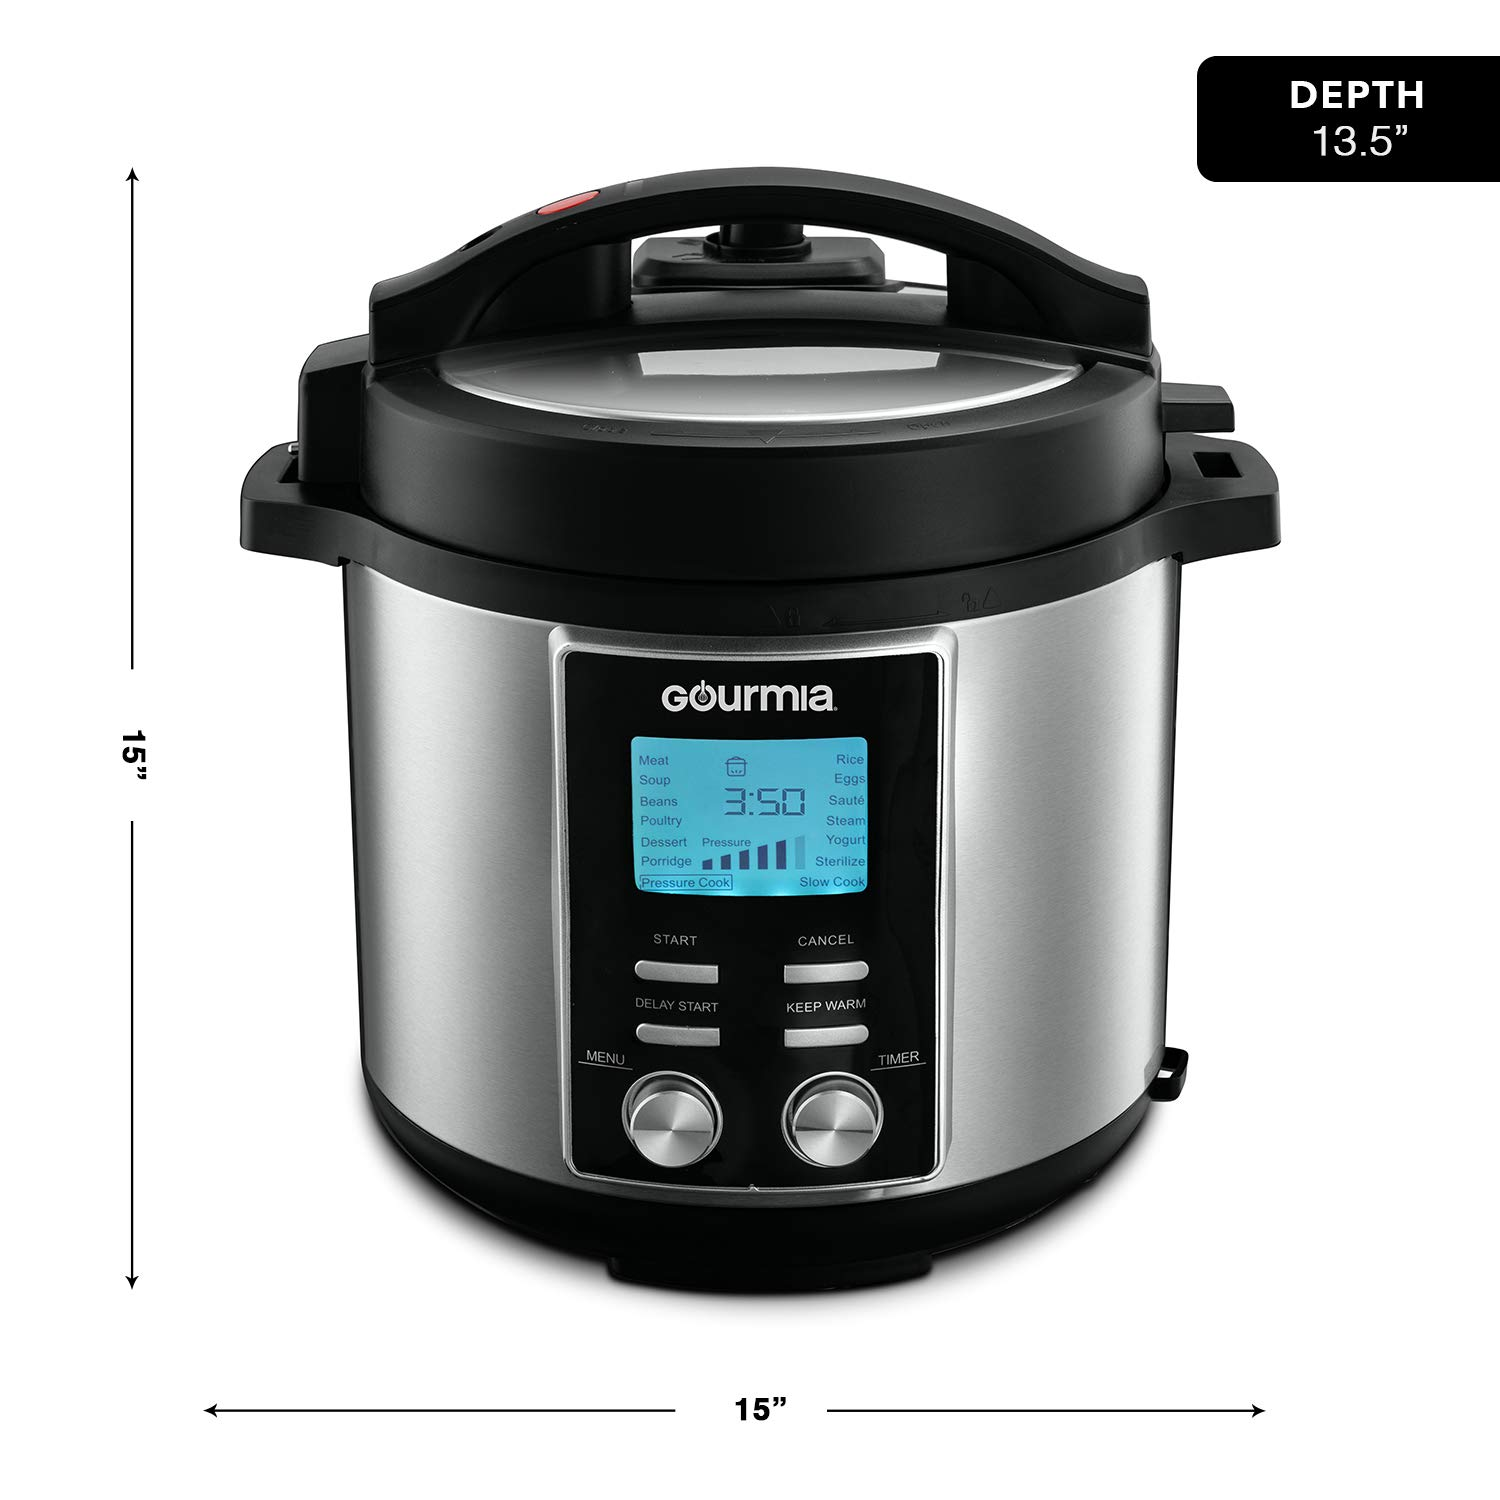 Gourmia GPC855 8 Qt Digital SmartPot Multi-Function Pressure Cooker | 15 Cook Modes | Removable Nonstick Pot | 24-Hour Delay Timer | Automatic Keep Warm | LCD Display | Pressure Sensor Lid Lock by Gourmia (Image #6)